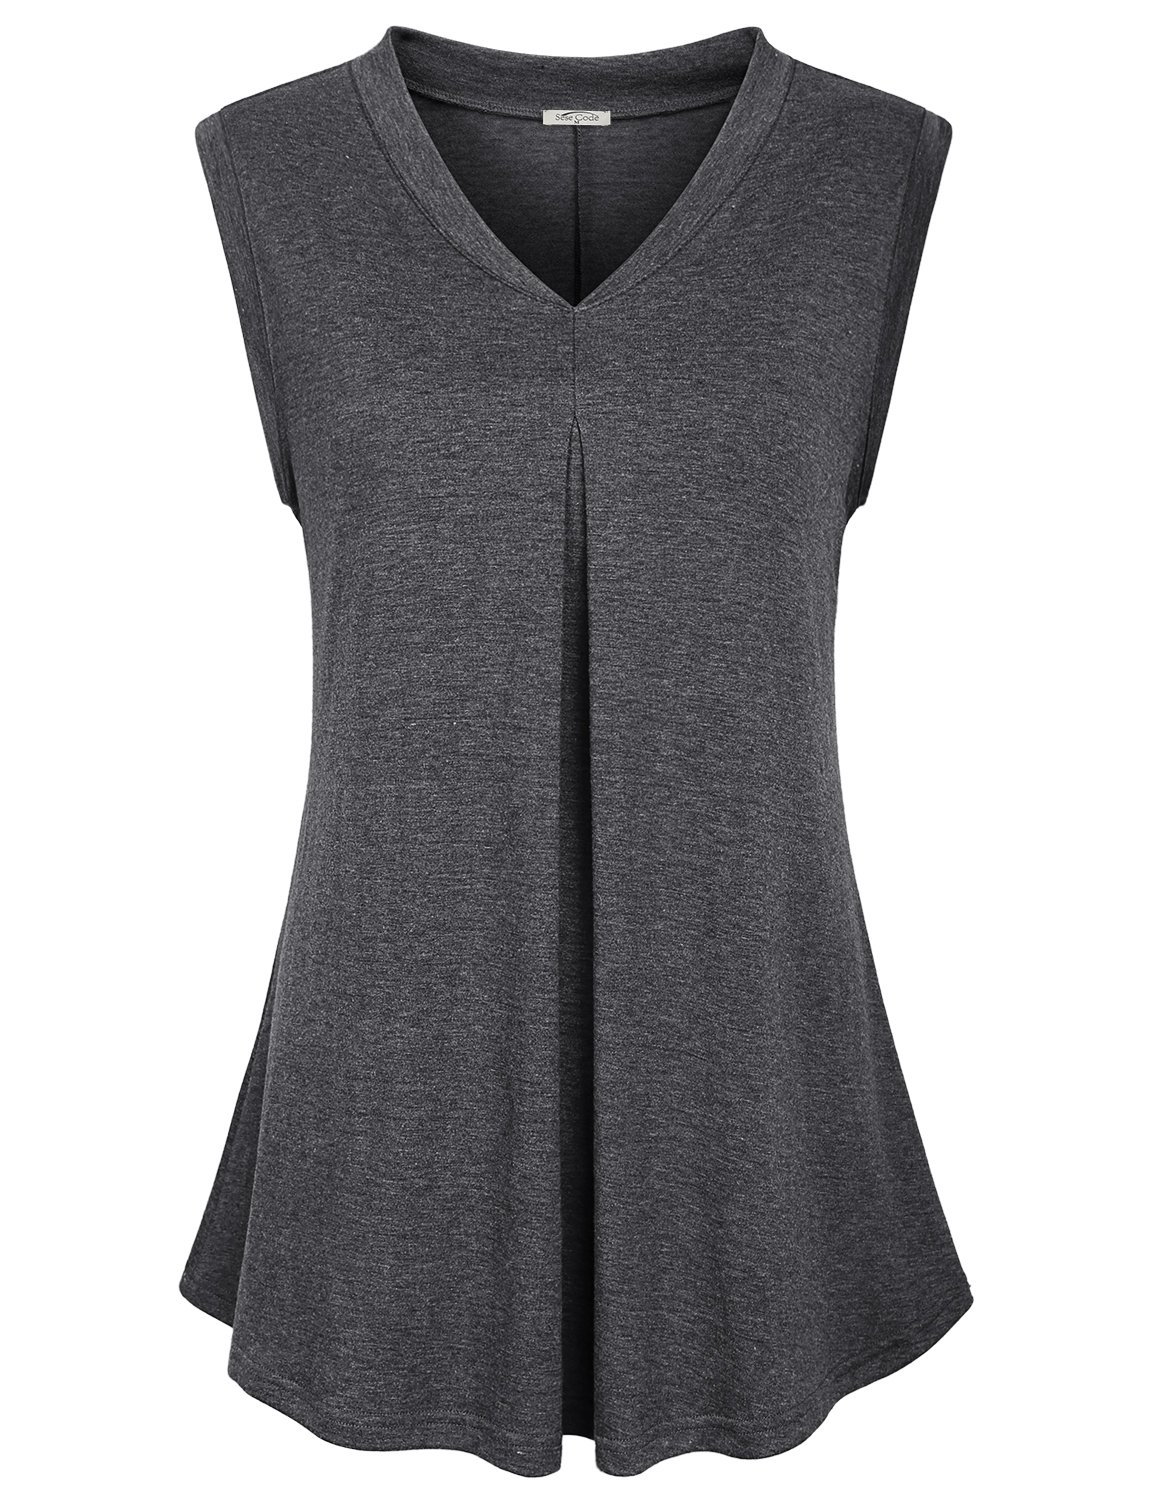 SeSe Code Sleeveless Tunics for Women Ladies Wear with Leggings Dressy Shirts Elegant Work Business Casual Stretch V Neck Blouse Space Dye Dark Grey M